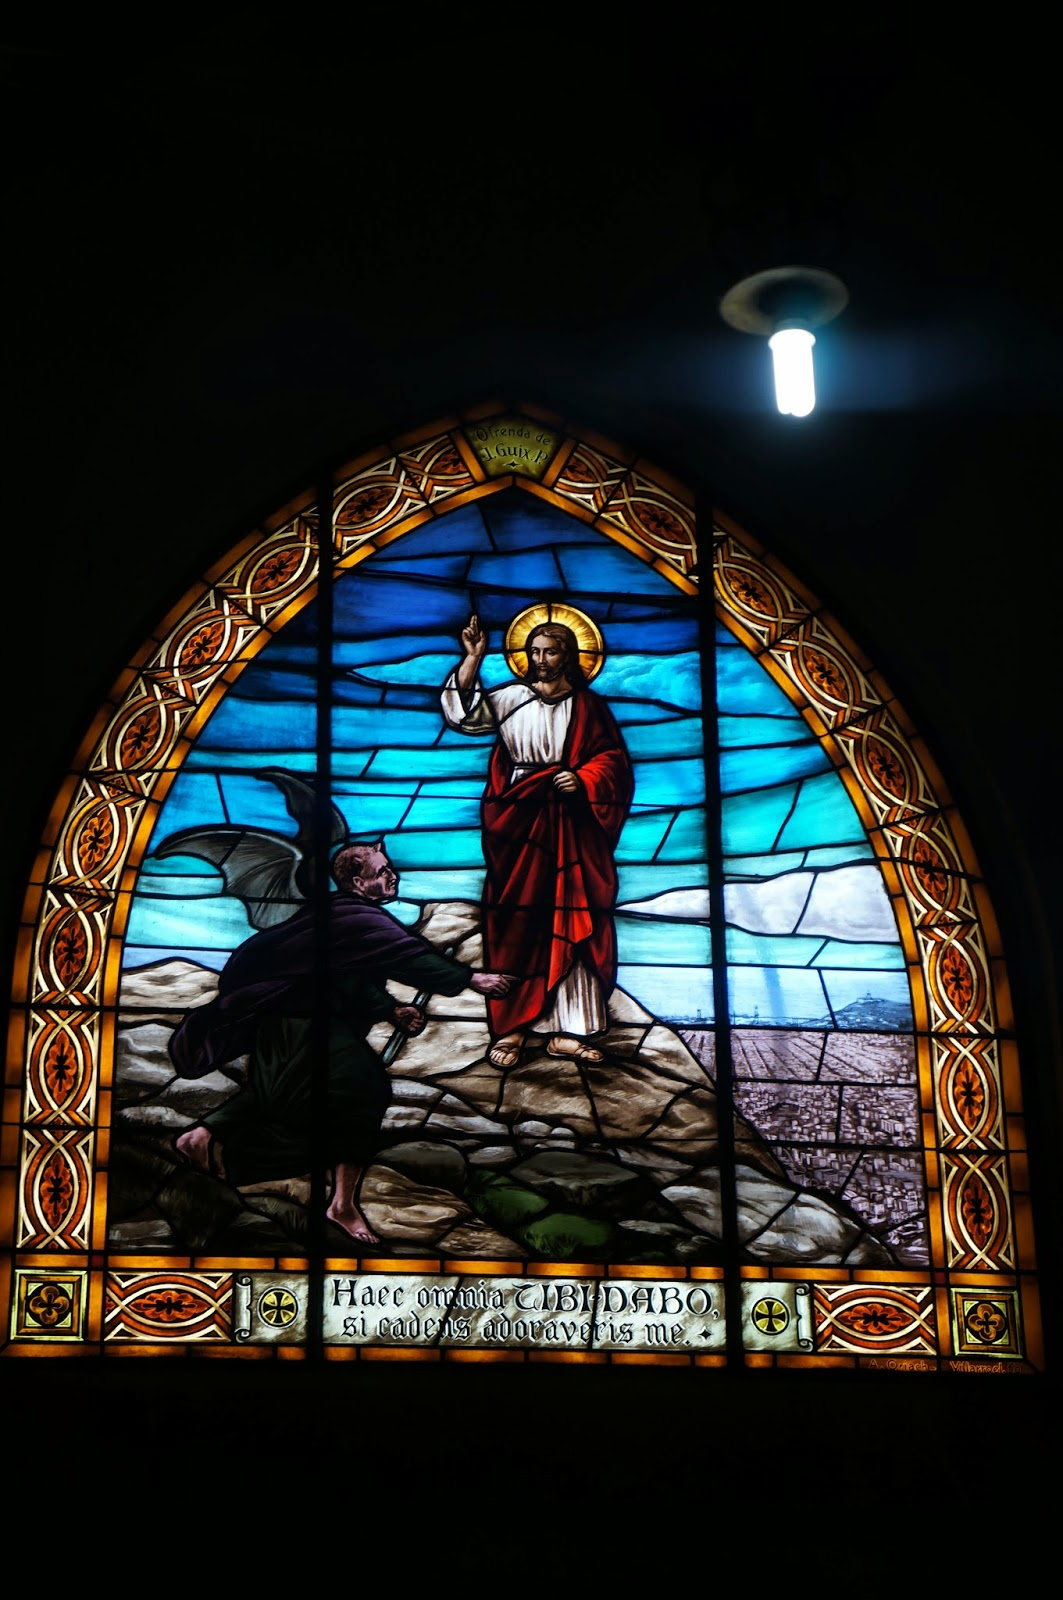 Stained glass window from the Sagrat Cor cathedral in the Tibidabo area